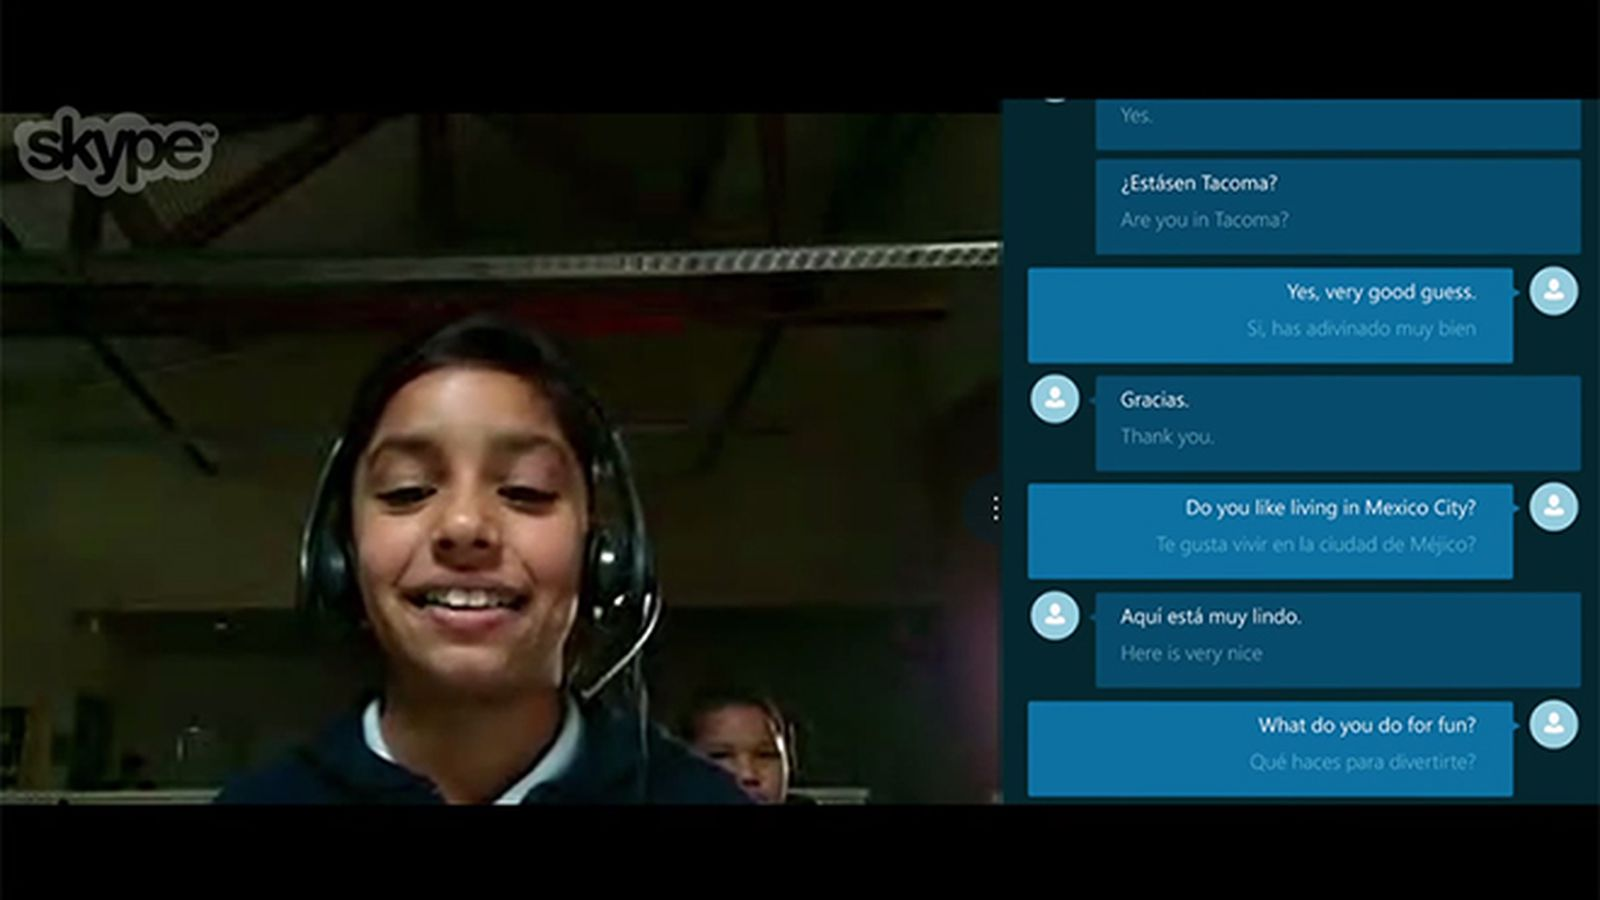 English To Italian Translator Google: Skype's Real-time Translation Now Works For Calls To